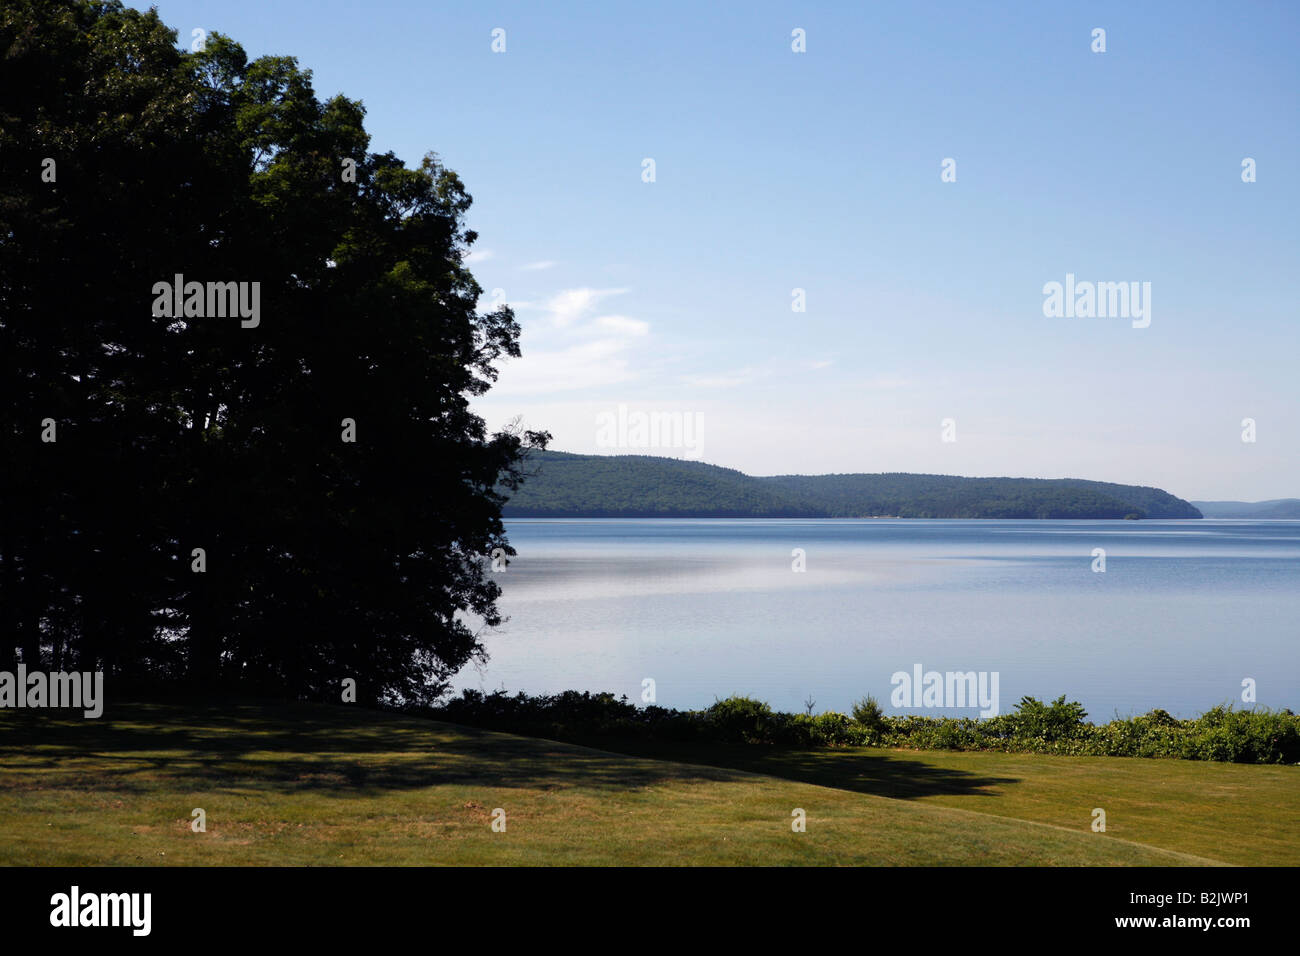 Quabbin Reservoir, public water supply for the city of Boston - Stock Image